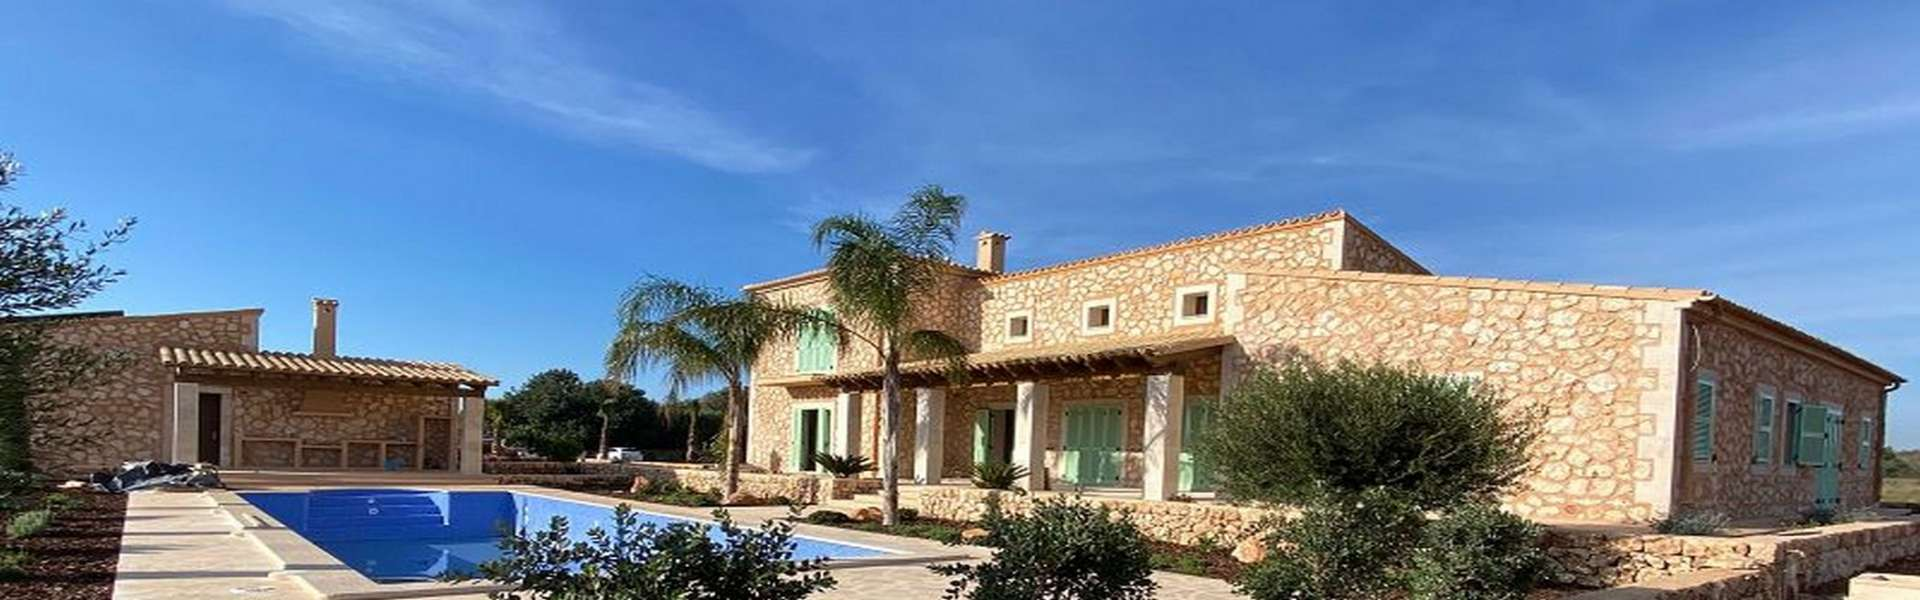 Natural stone villa for sale or rent in Felanitx